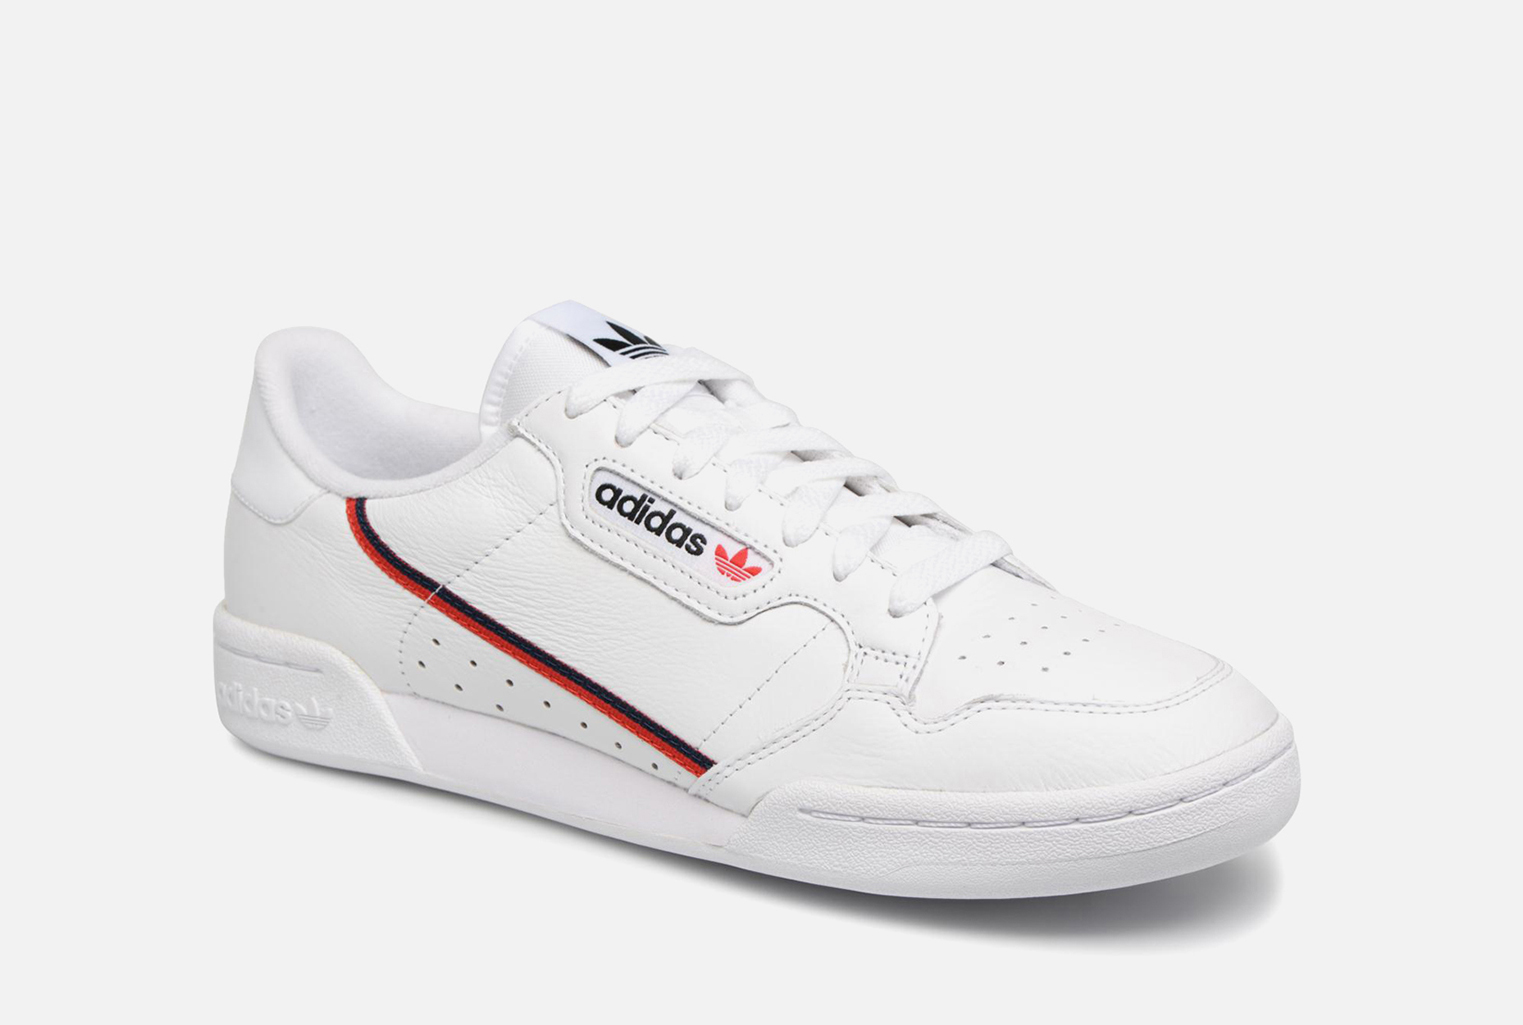 b214b53658c adidas Originals Continental 80